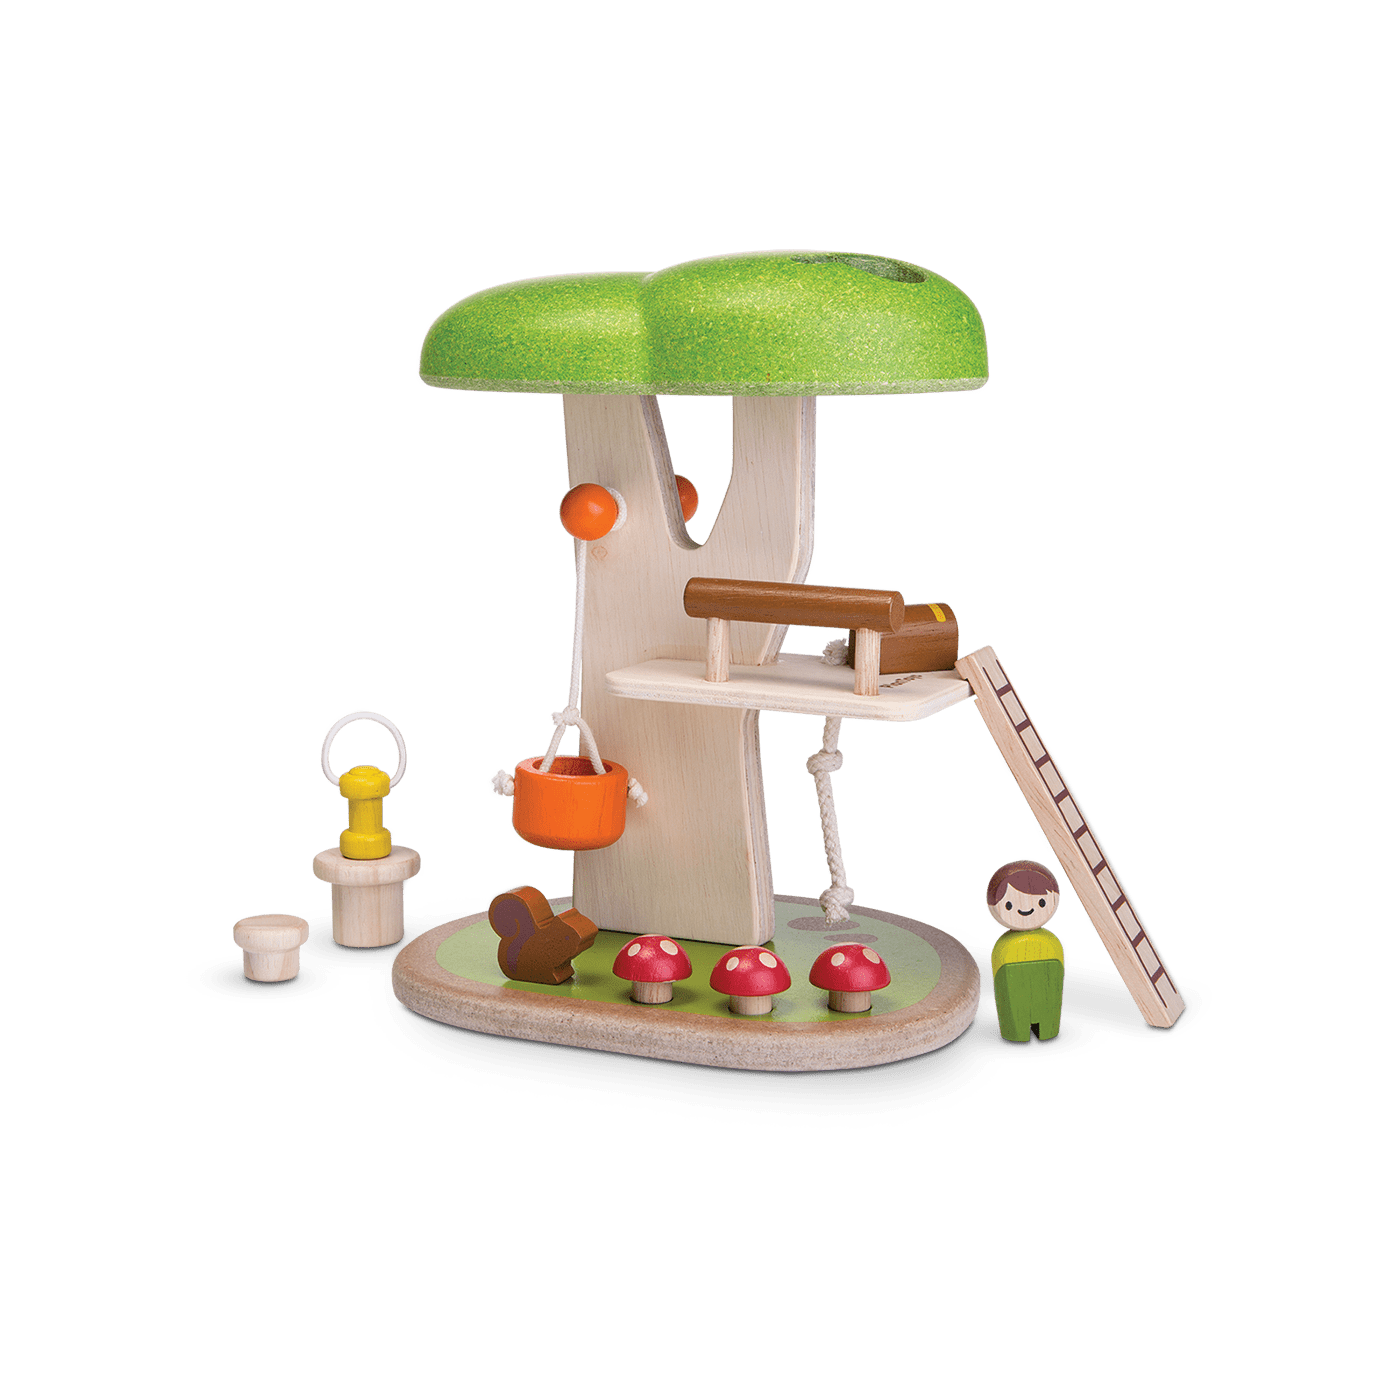 6626_PlanToys_TREE_HOUSE_Pretend_Play_Imagination_Coordination_Language_and_Communications_Social_Fine_Motor_3yrs_Wooden_toys_Education_toys_Safety_Toys_Non-toxic_0.png